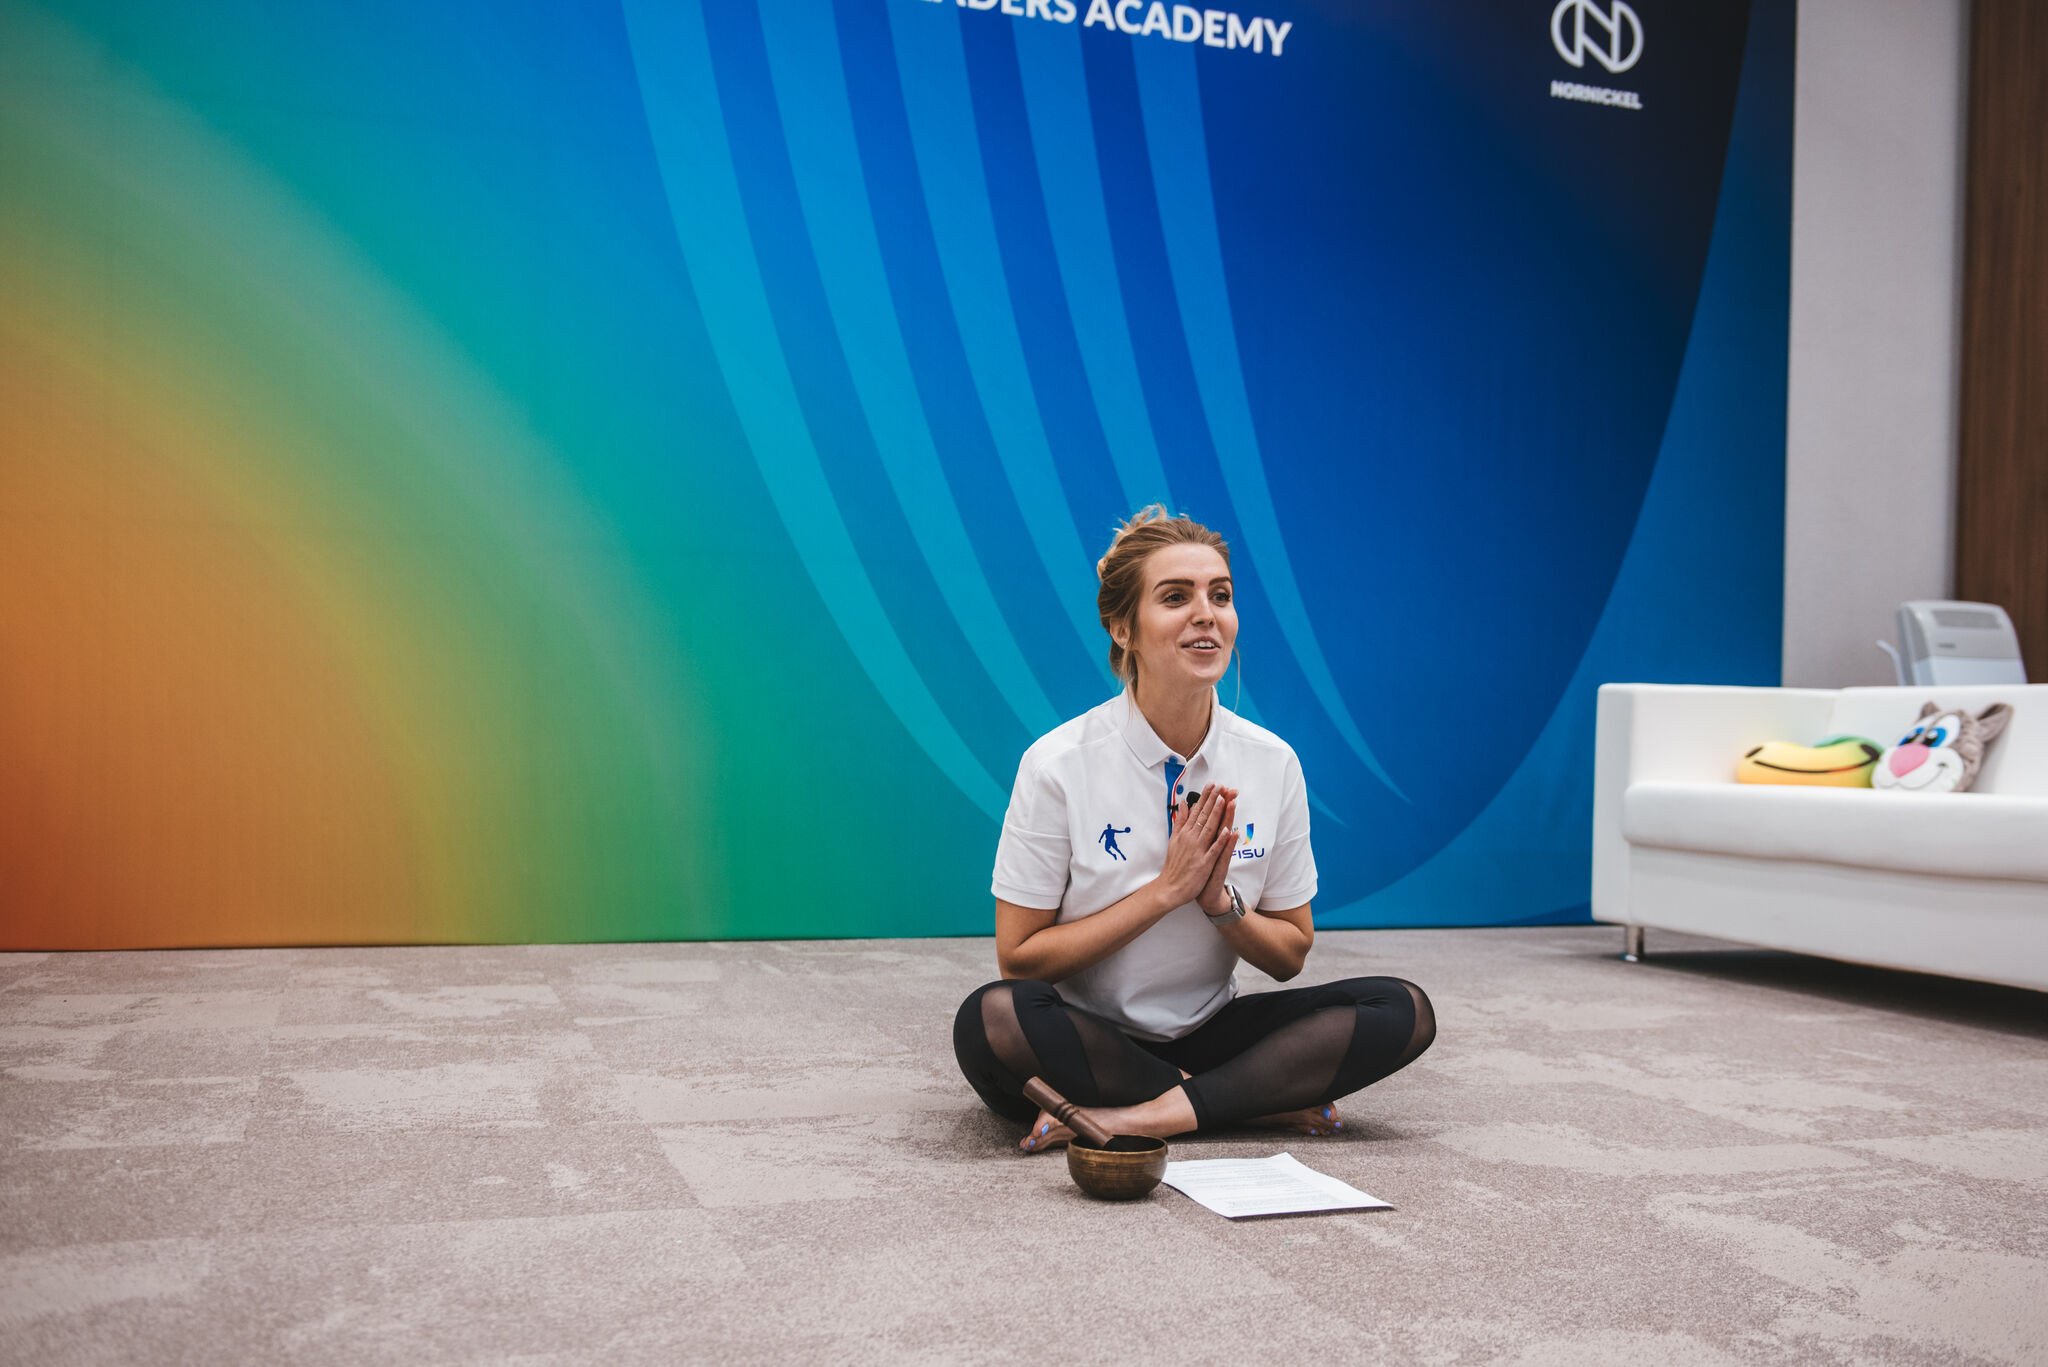 The event featured yoga sessions between presentations to ensure participants remained alert and healthy ©FISU